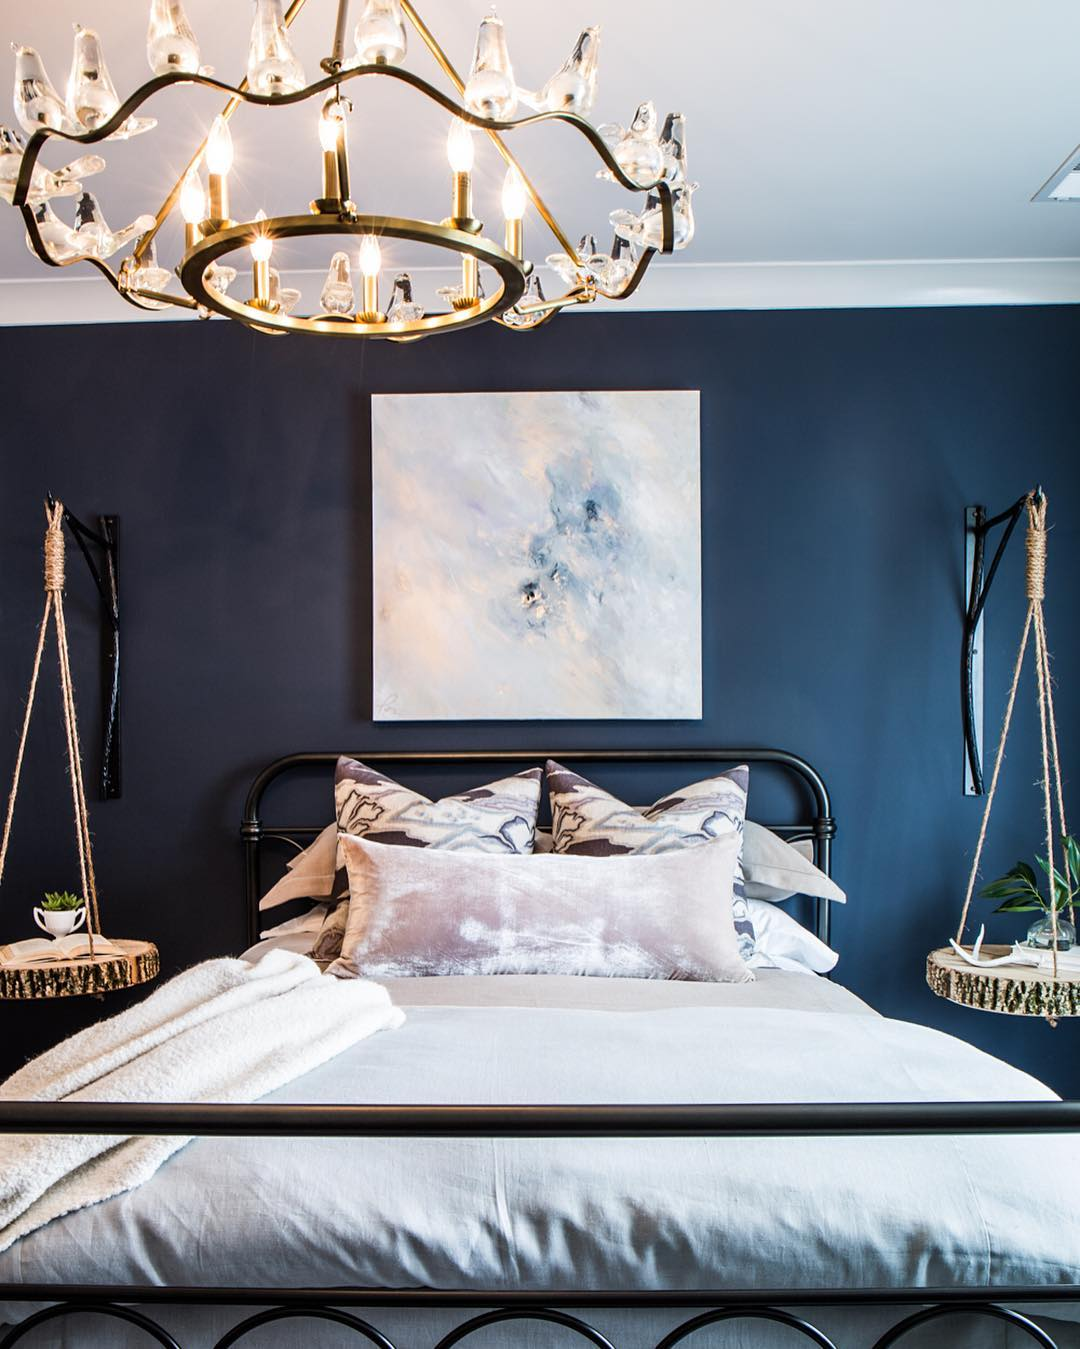 Blue Gray By Bm For Accent Wall: Benjamin Moore Hale Navy Bedroom Paint